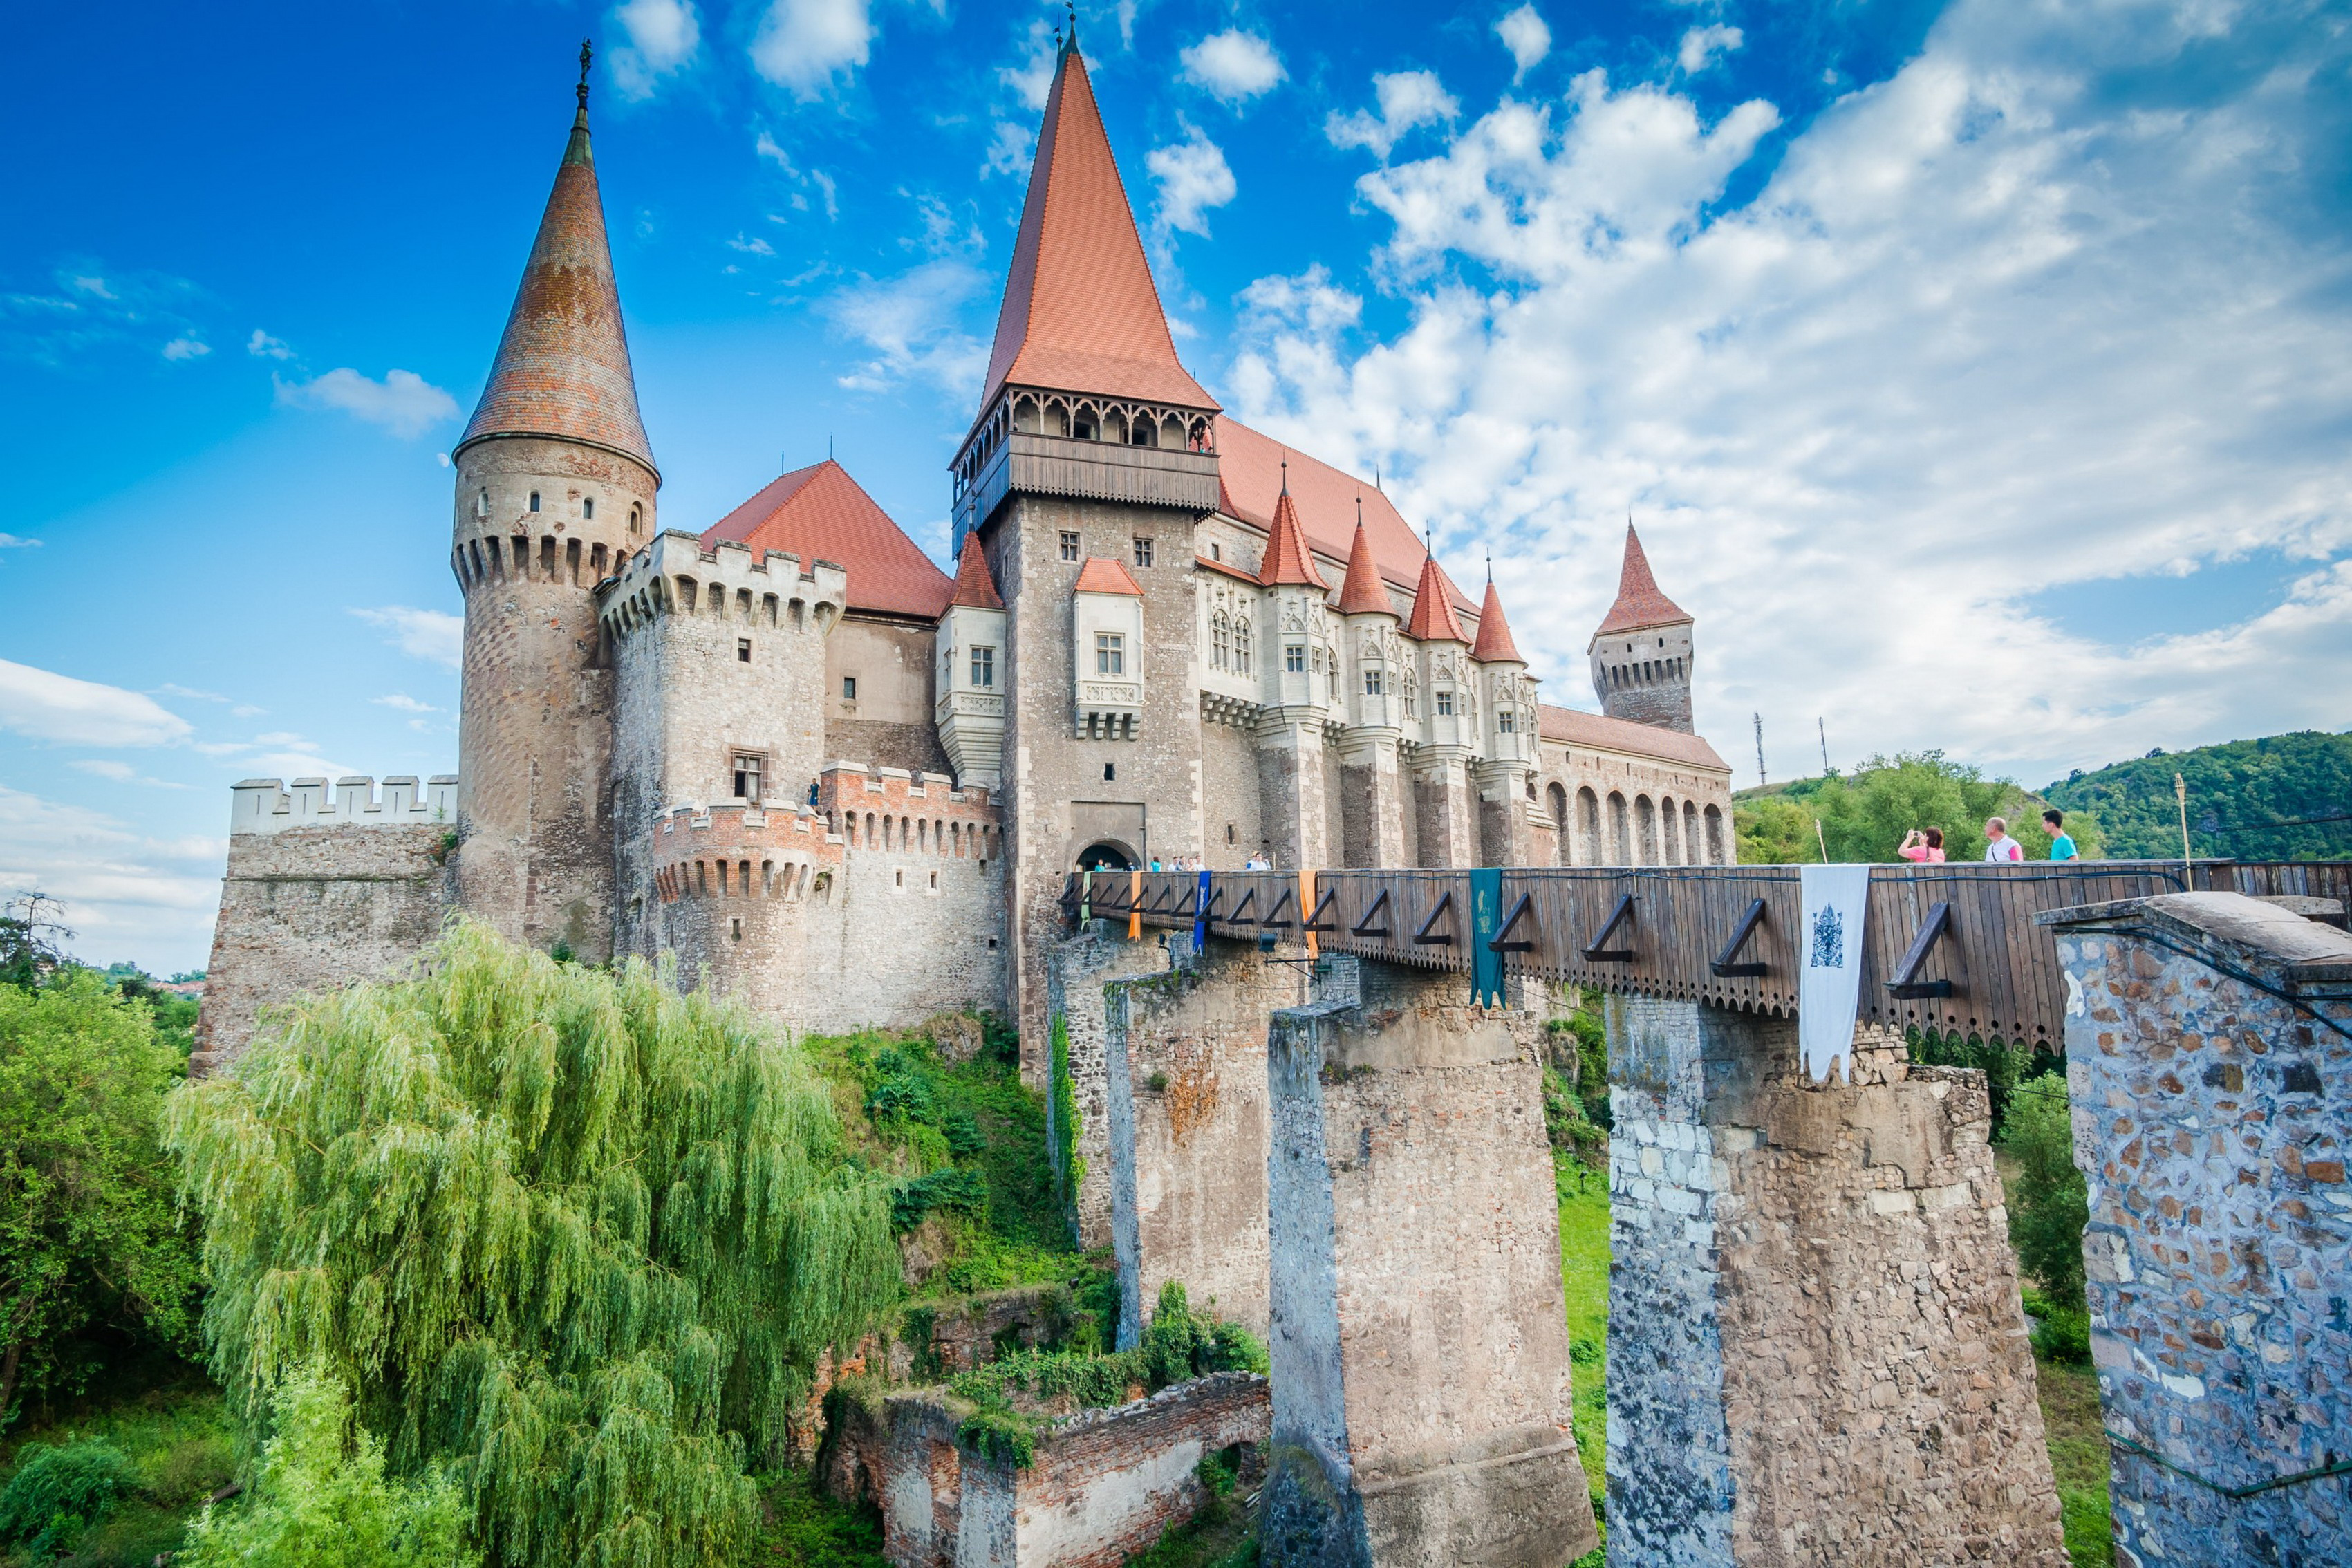 Home decoration castle tourists edification beautiful landscape Silk Fabric Poster Print 076FJ